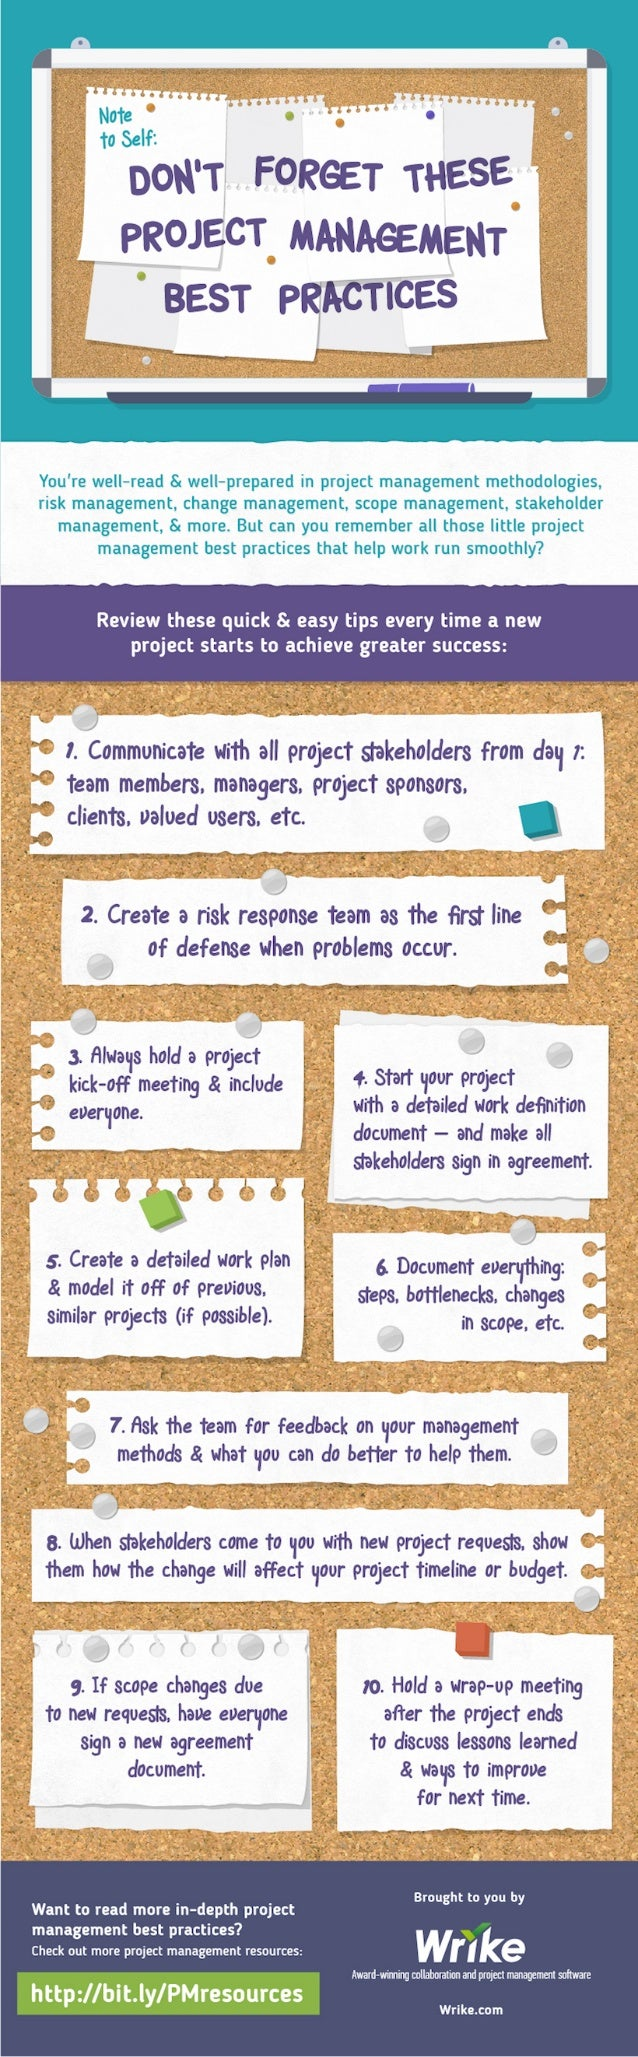 10 Project Management Best Practices (Infographic)